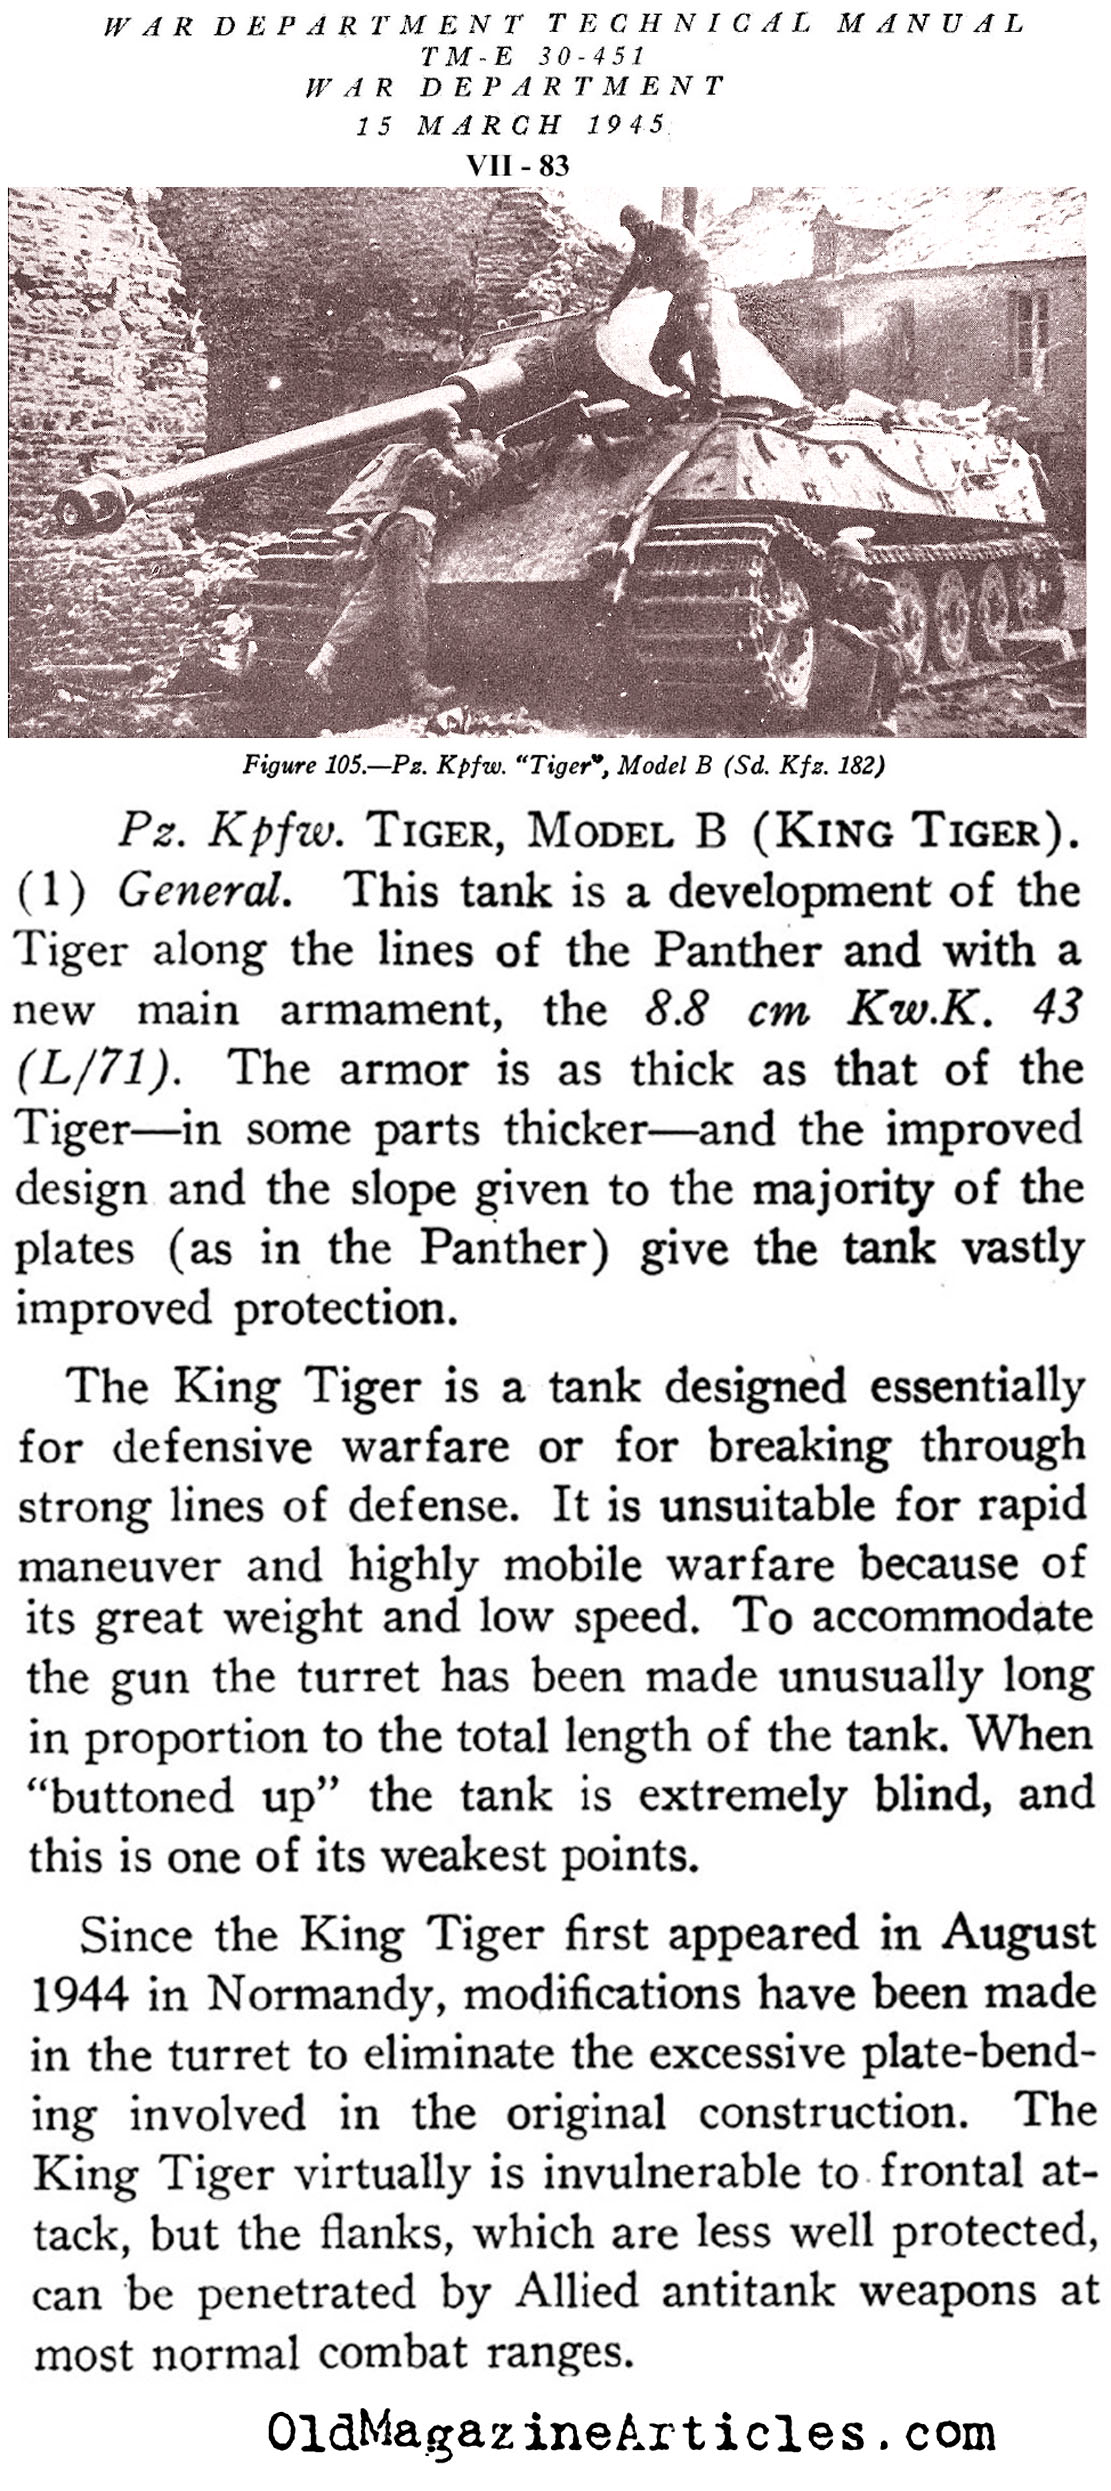 The  King Tiger Tank  (U.S. Dept. of War, 1945)